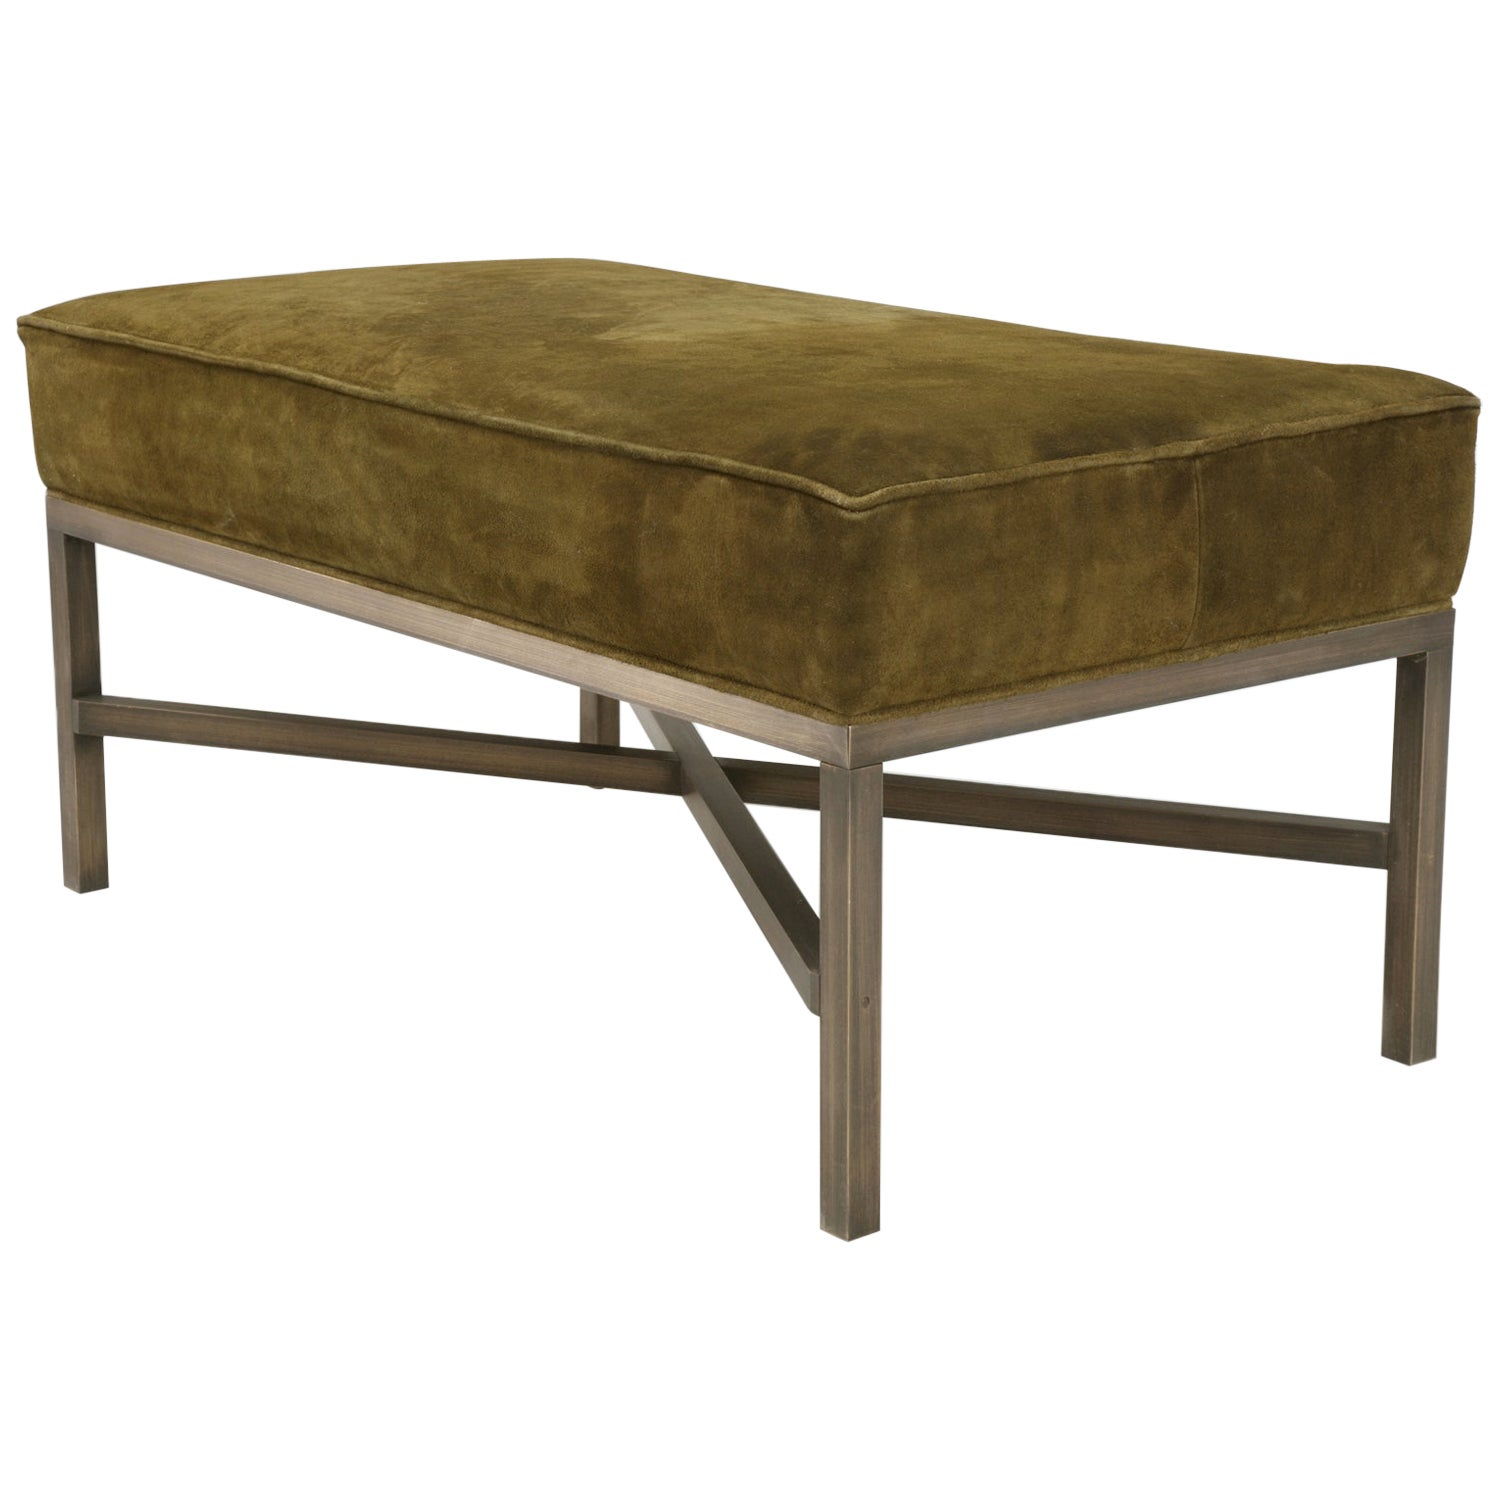 Custom Handmade in Chicago Bronze Bench or Ottoman in Any Dimension or Finish